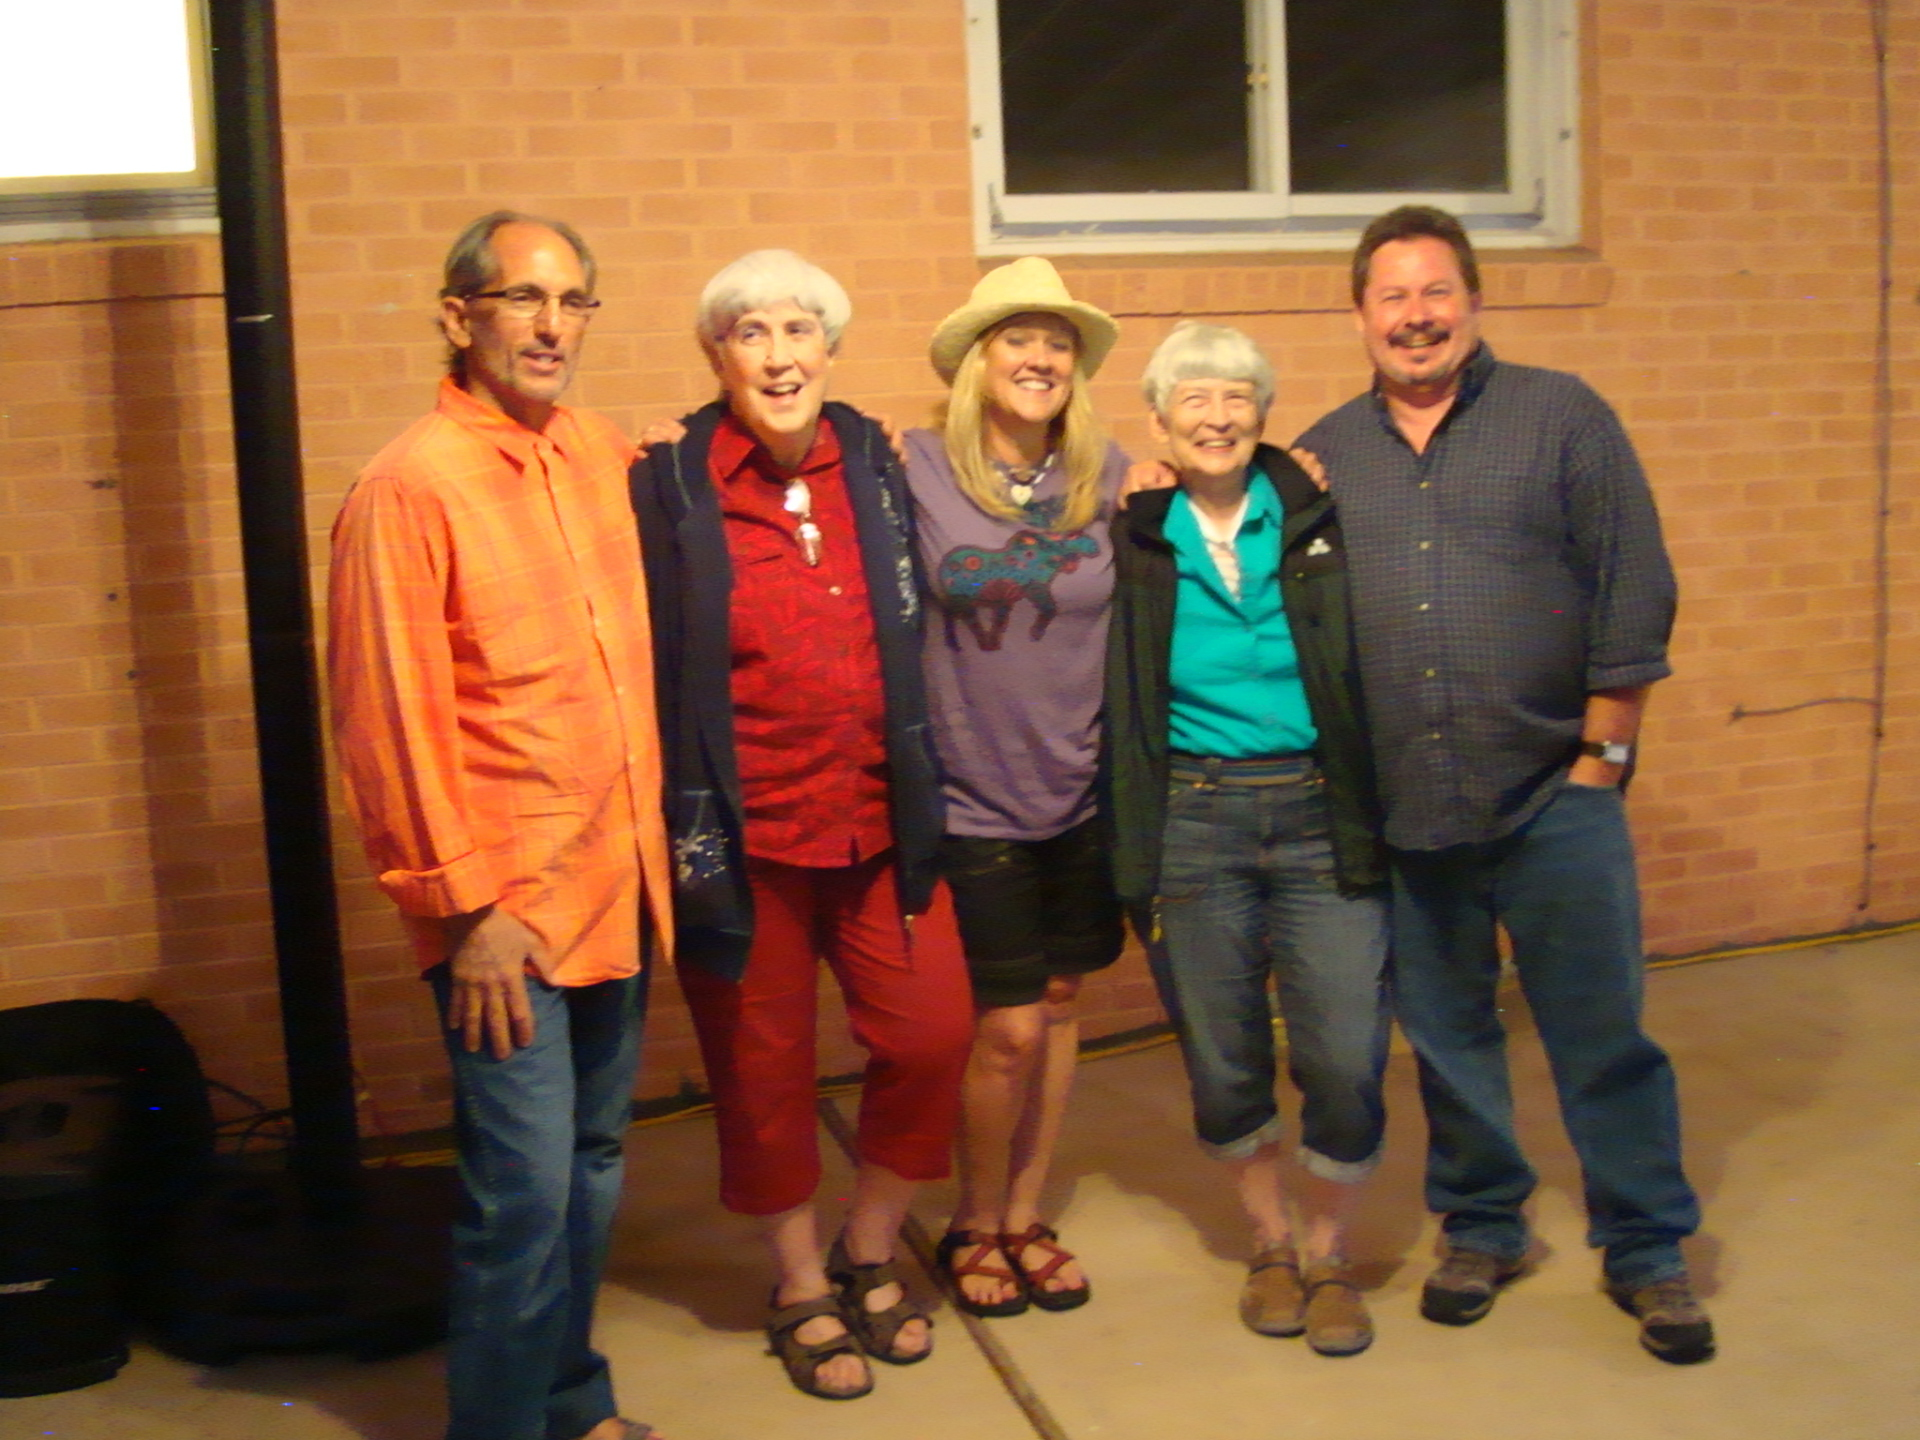 Don, Corlie, Mary, Gayle & Tony after the concert